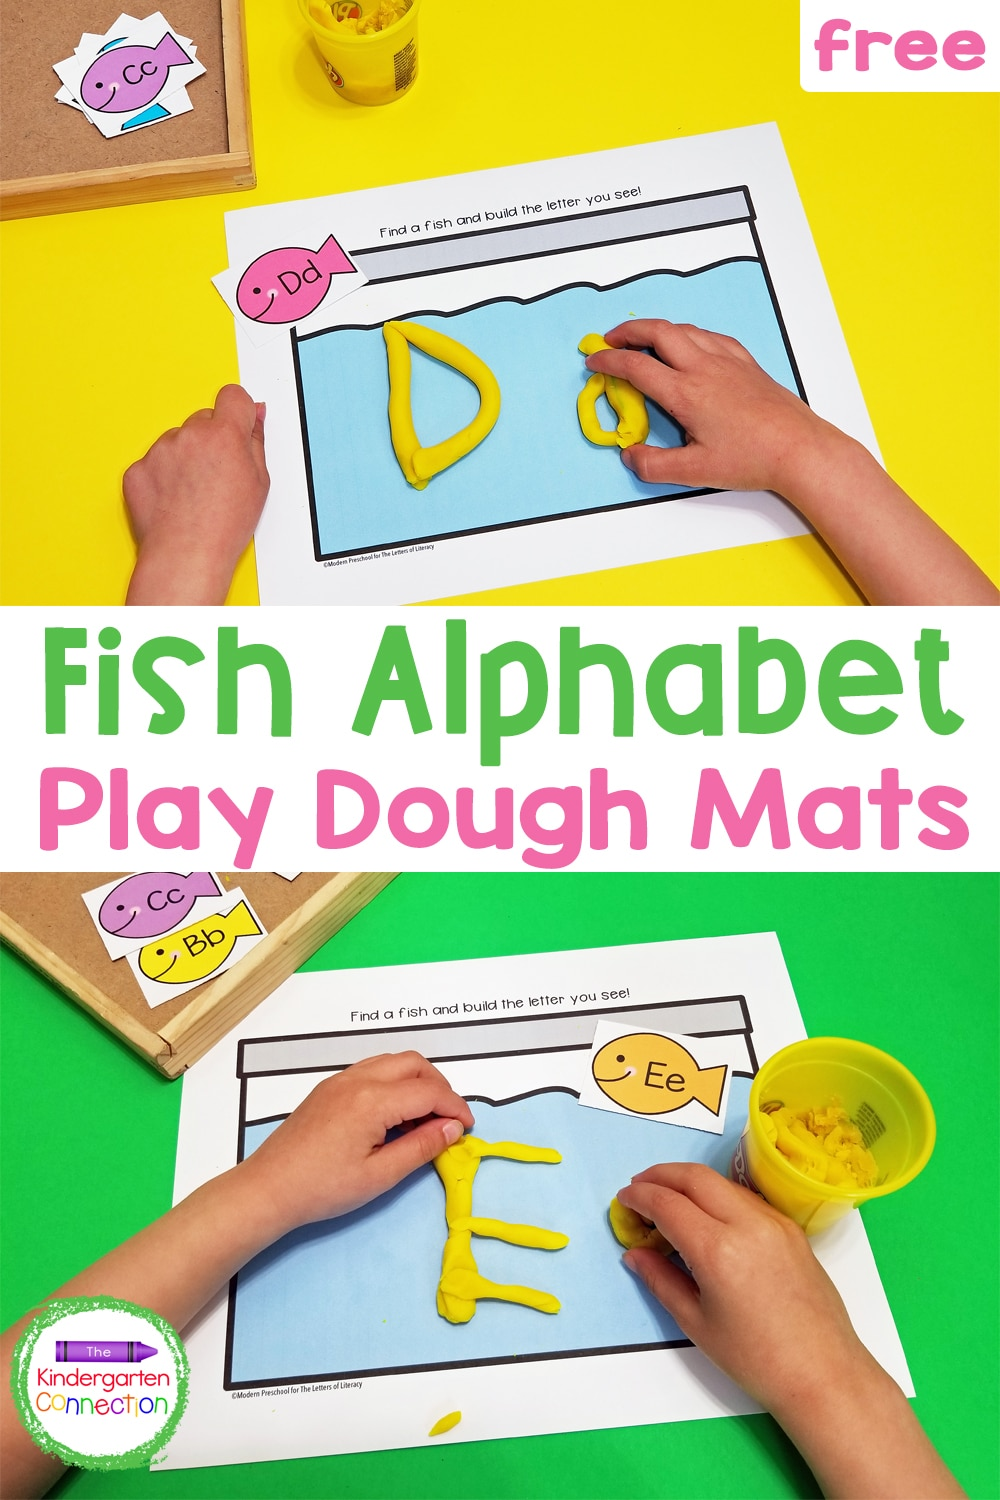 Practice both letter recognition and building CVC words with these fun and free Alphabet Fish Play Dough Mats for Pre-K & Kindergarten!